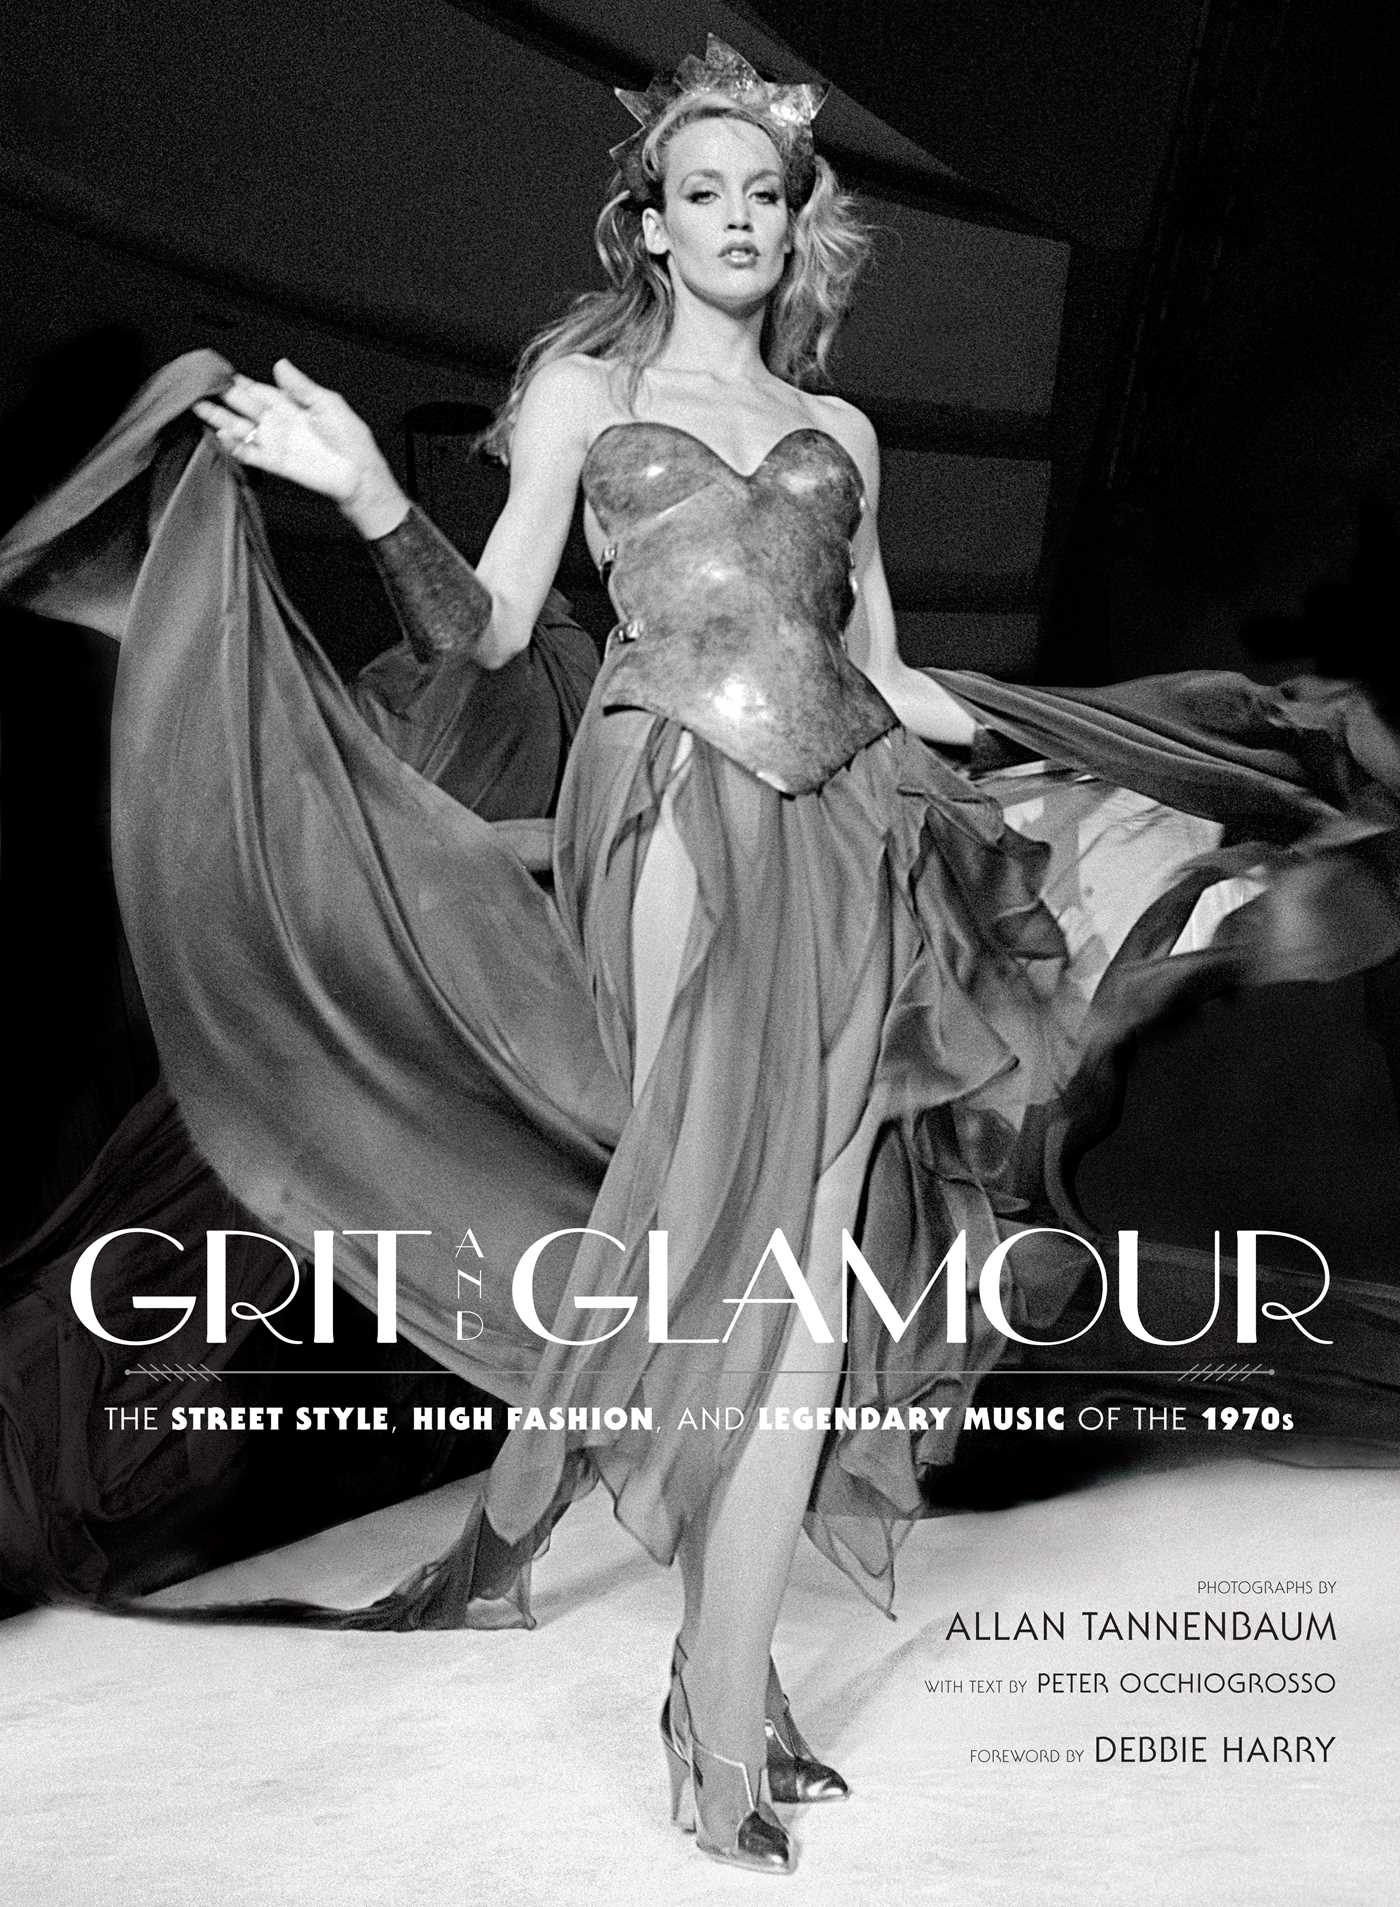 Grit and glamour 9781608878192 hr